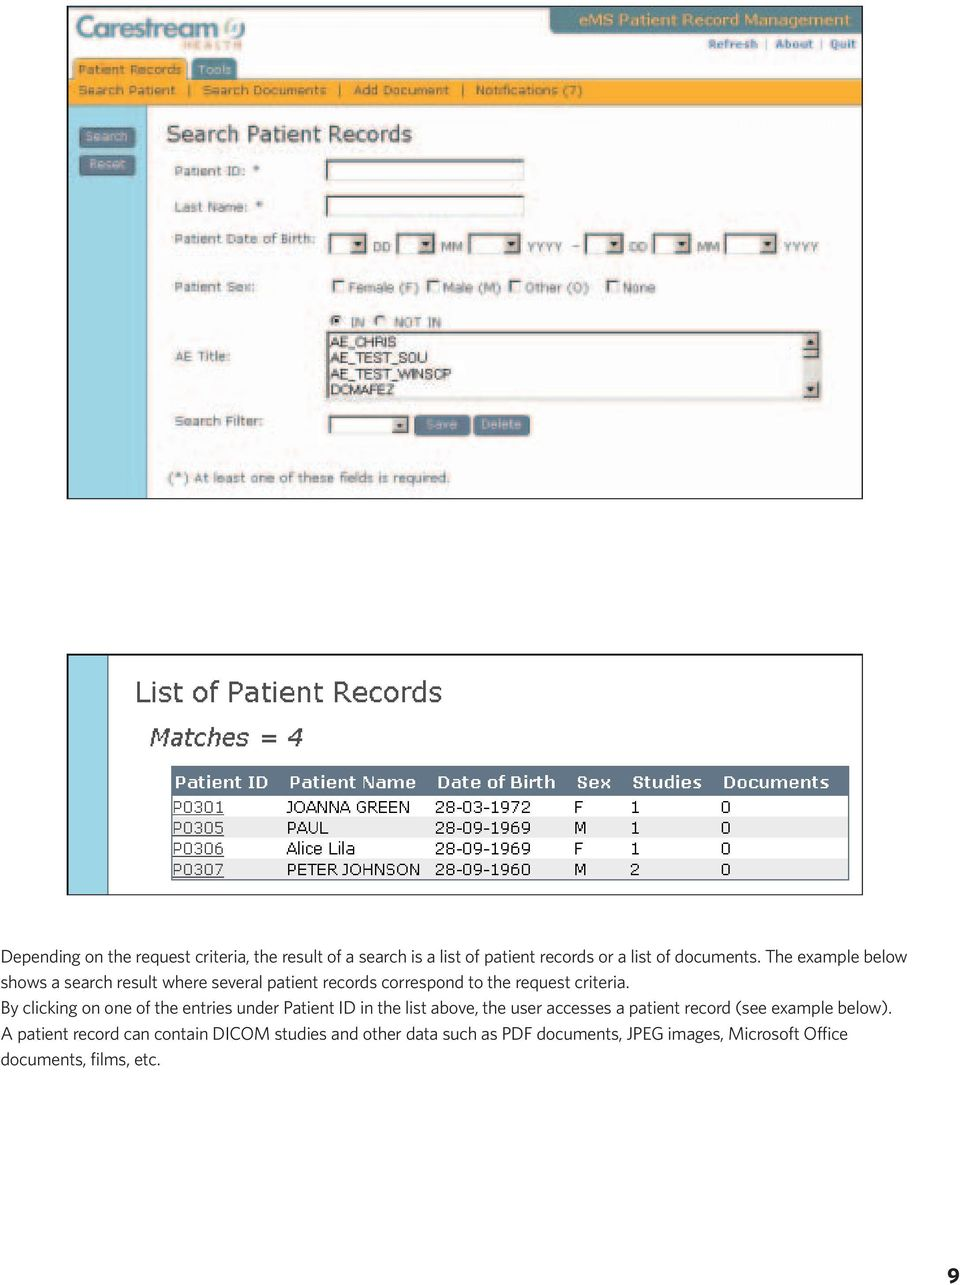 By clicking on one of the entries under Patient ID in the list above, the user accesses a patient record (see example